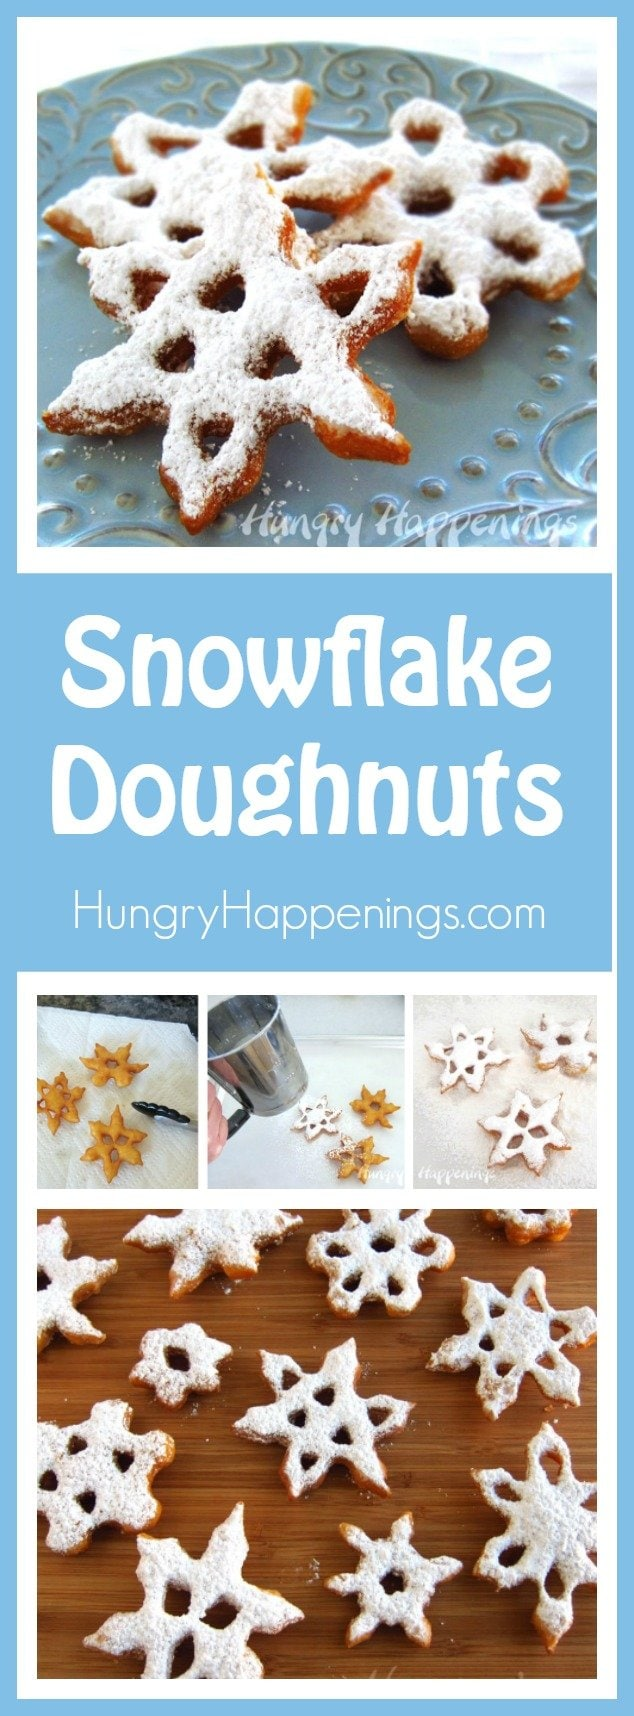 Turn store bought dough into beautiful Sweet Snowflake Doughnuts. They will warm and fill you up on a snowy winter's day and make a festive breakfast for Christmas morning.